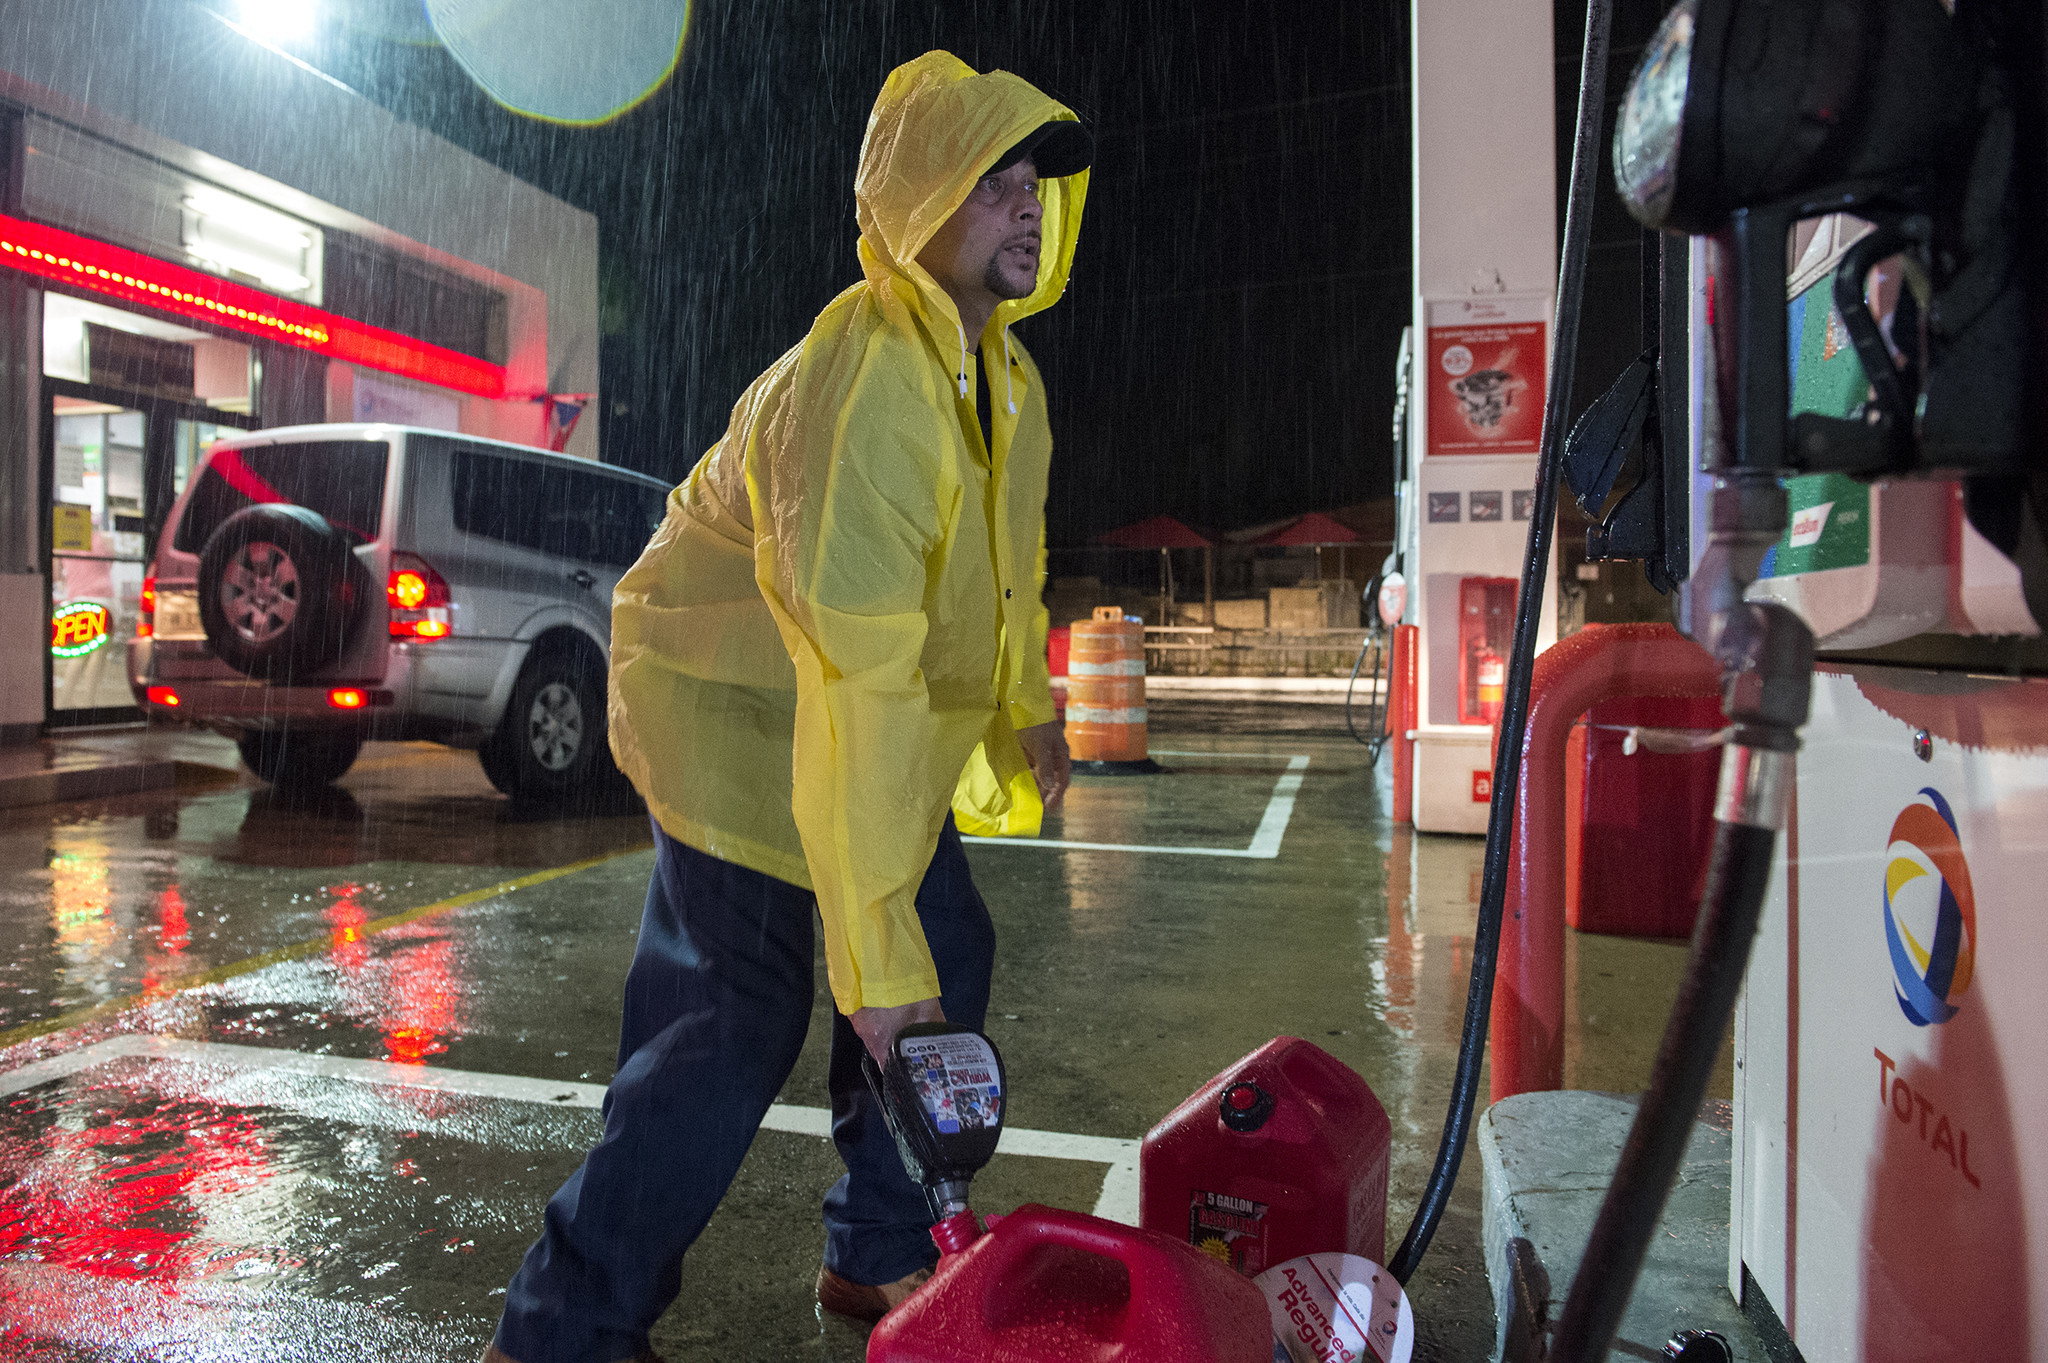 Jimmy Velasquez, 44, of East Hartford, fills up gasoline containers before the team